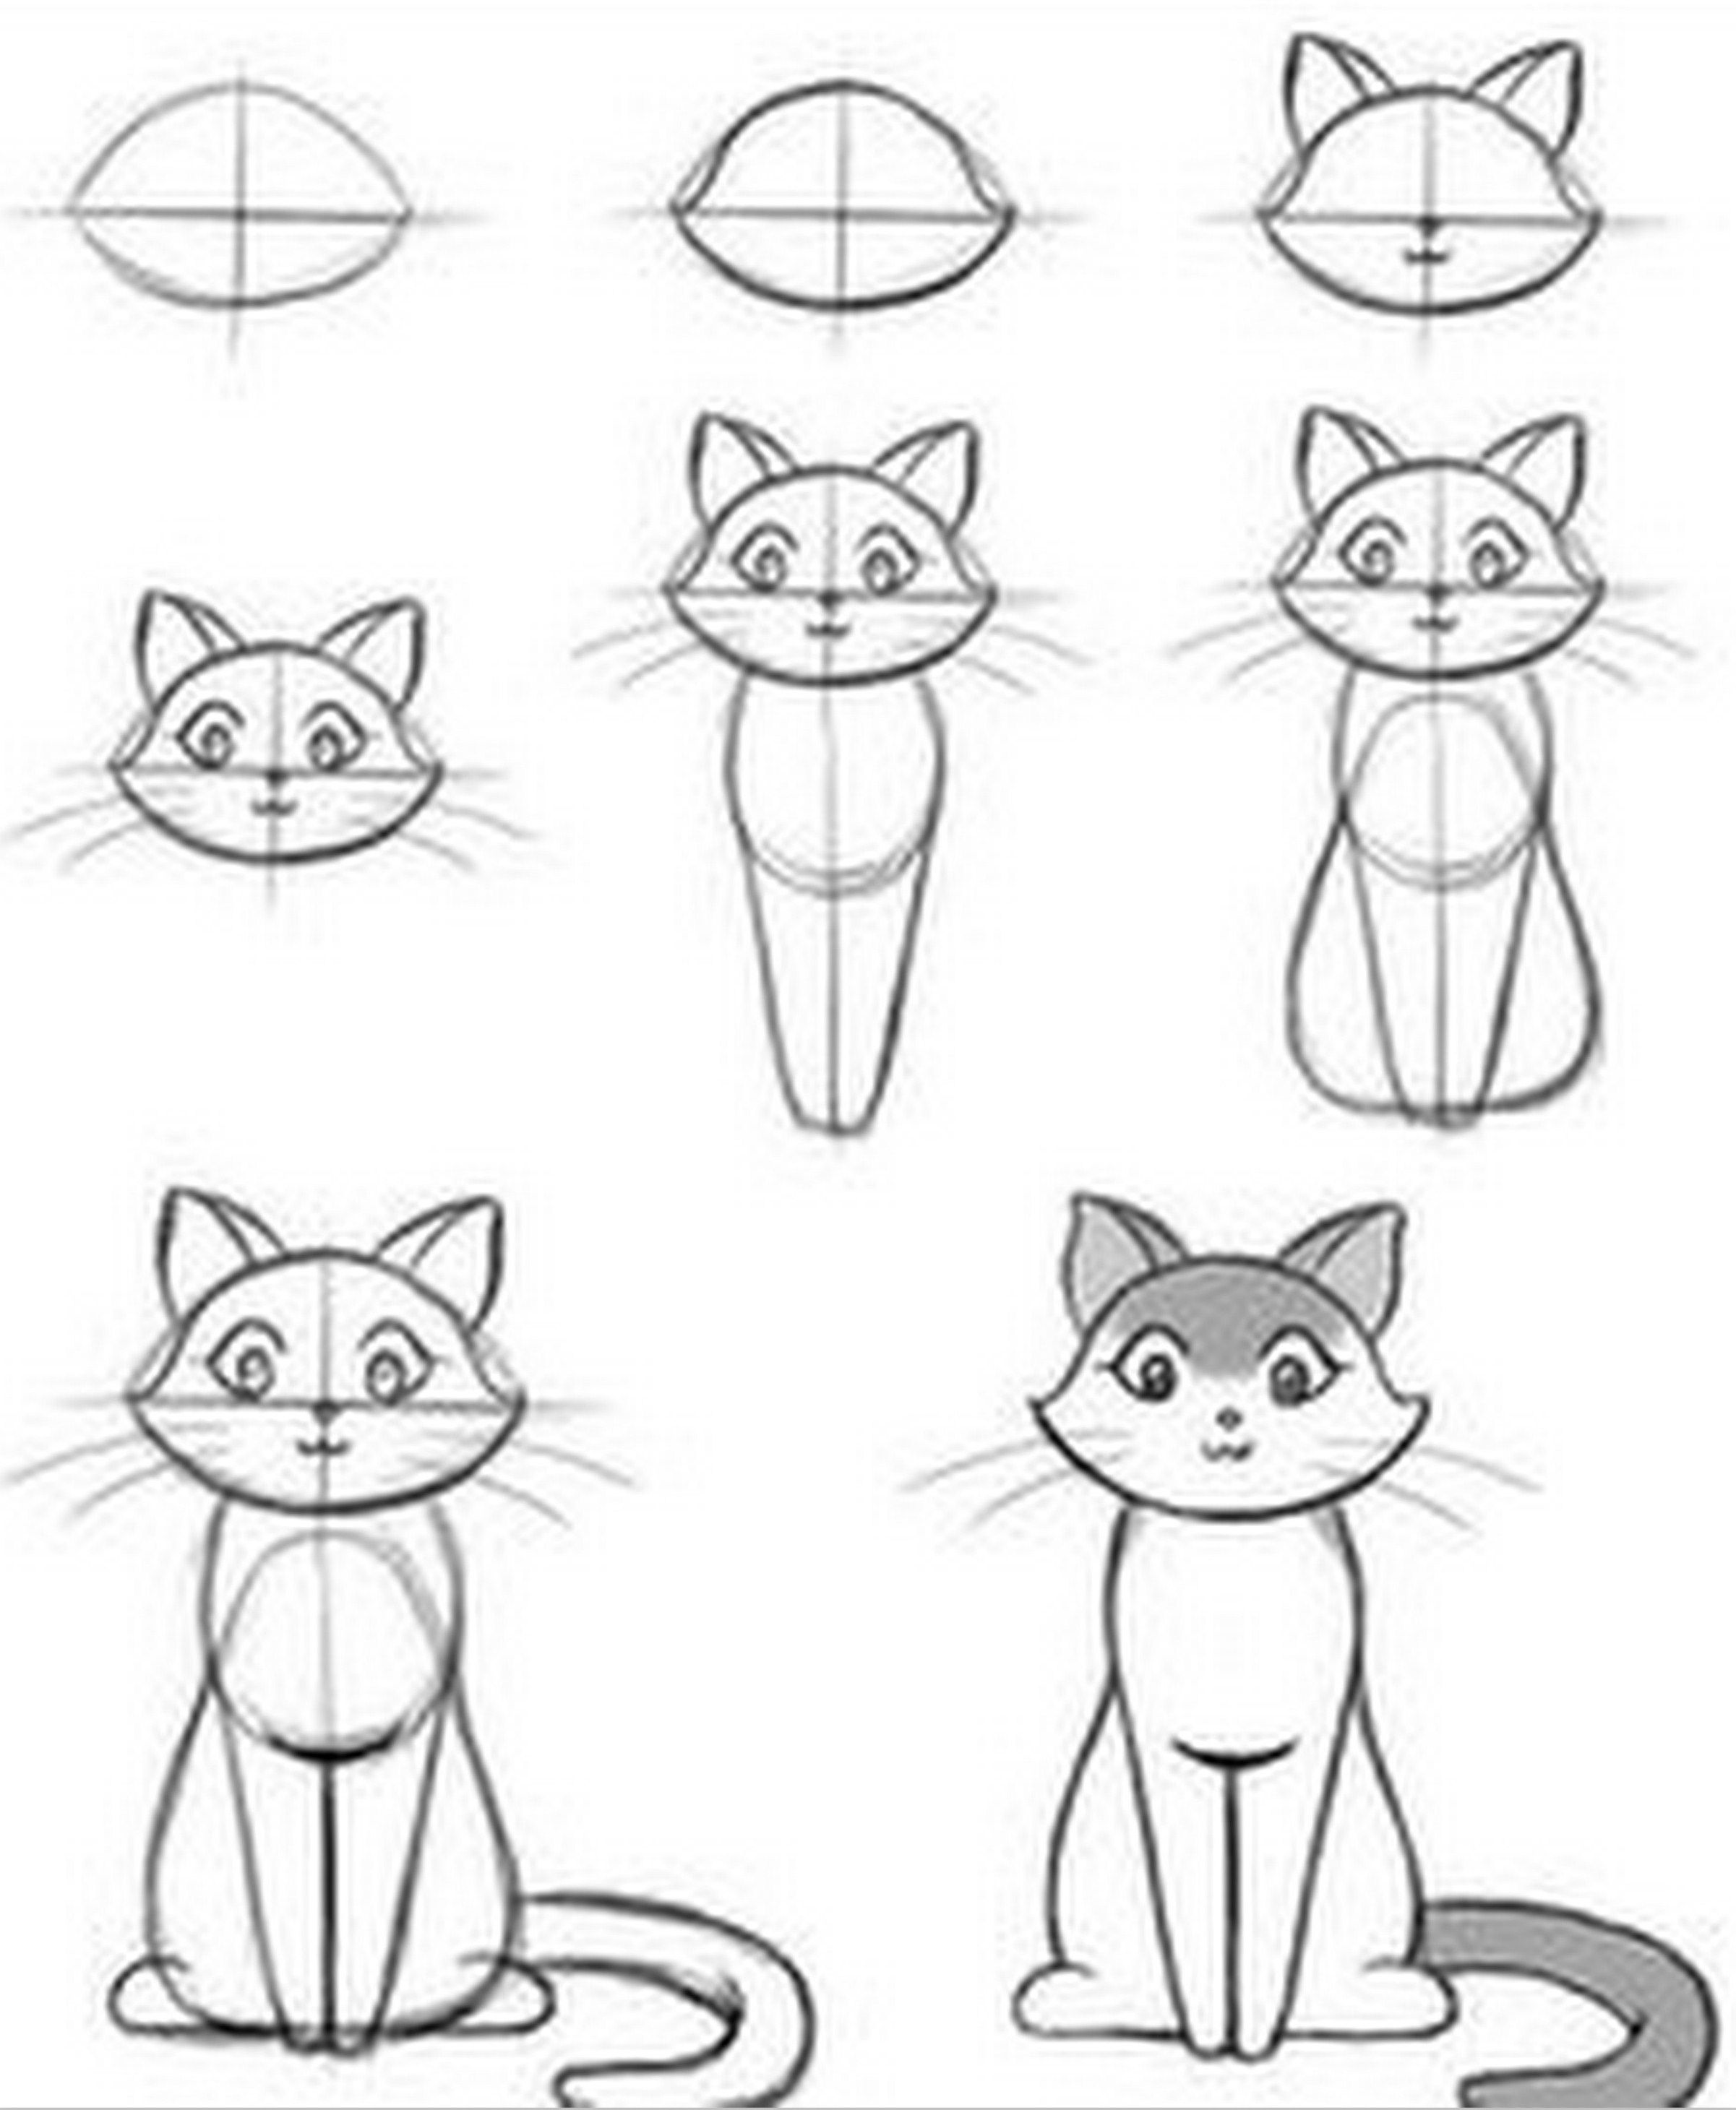 Handmade Craft Ank Pinterest Dessin Dessin Chat And Apprendre